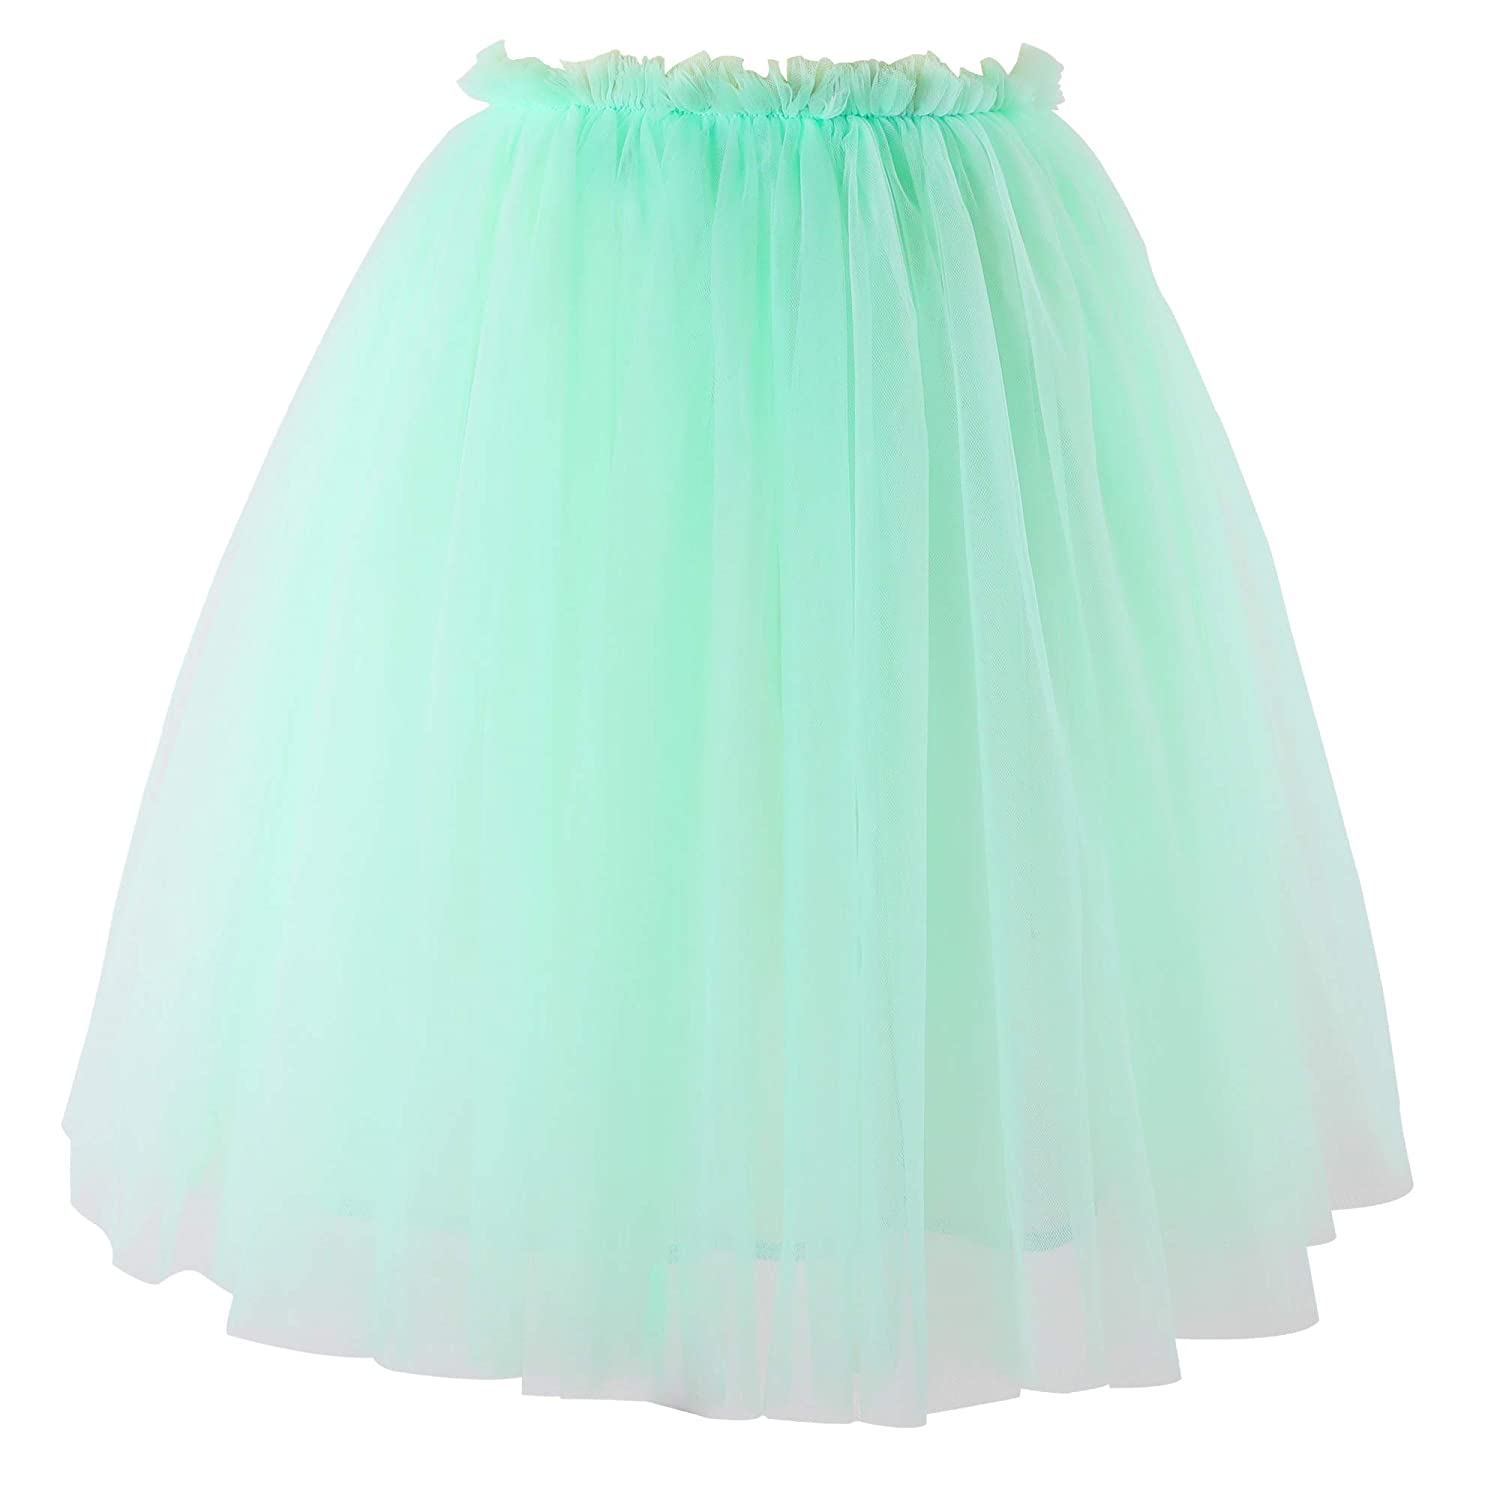 76662bc6d Amazon.com: Flofallzique Tulle Tutu Girls Skirt 1-12 Years Old Dancing  Party Toddler Skirt: Clothing